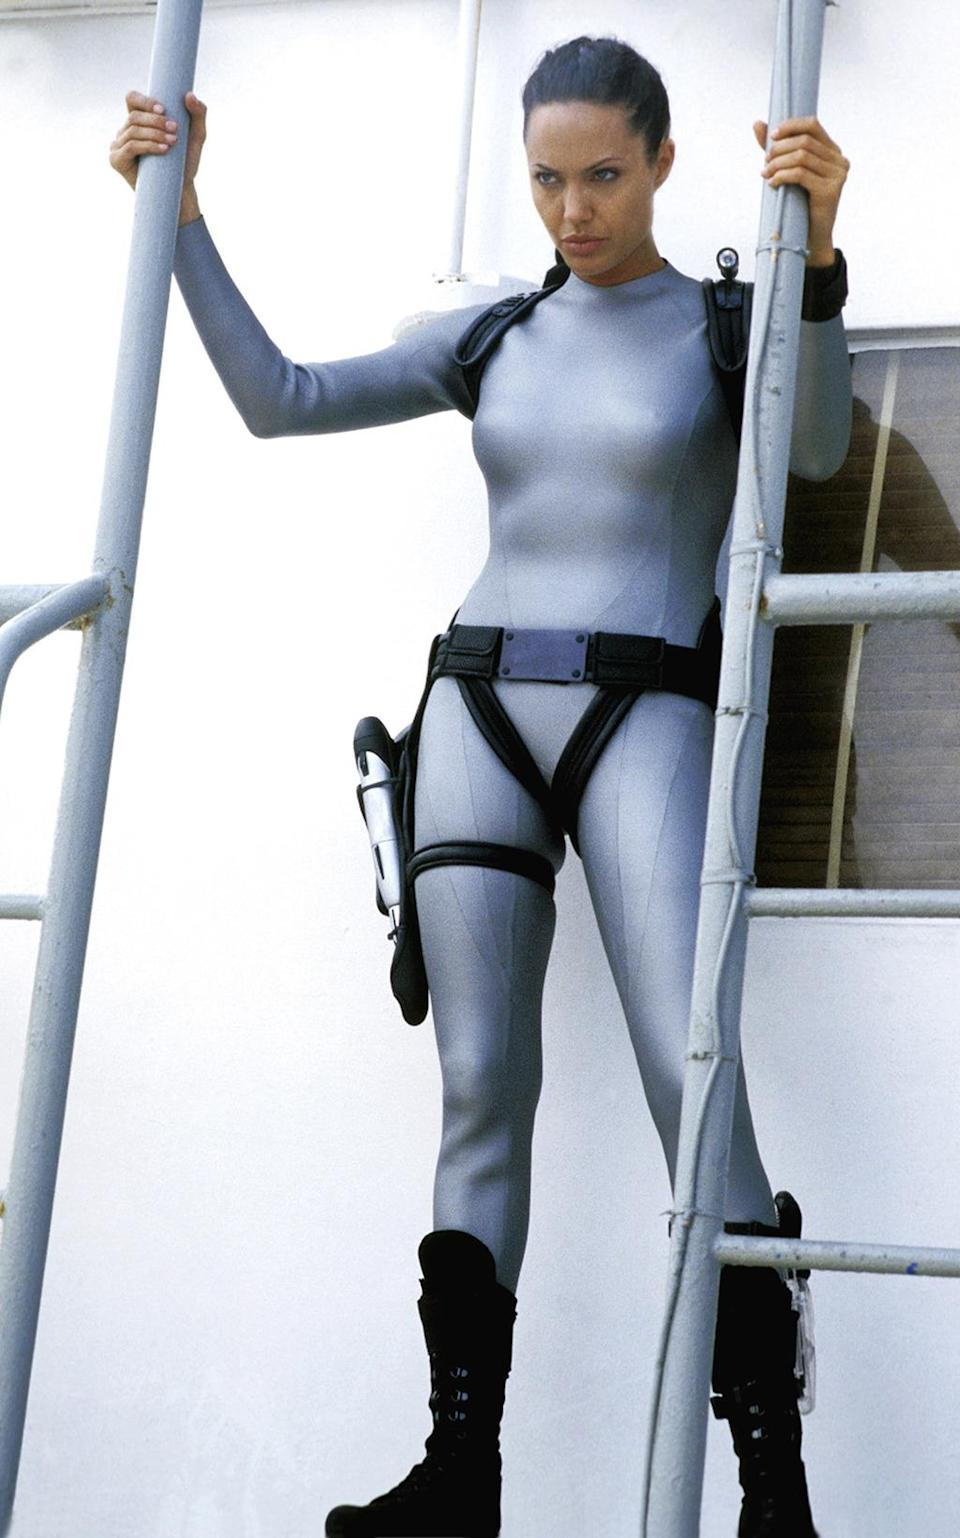 <p>'Cradle of Life' finds Lara (and her new snazzy, skintight wetsuit) on the hunt for Pandora's box. Reviewers prefer this to the original, but the box office fails to come close, which Paramount blames on the poor reception for the 'Angel of Darkness' game. (Photo: Everett) </p>